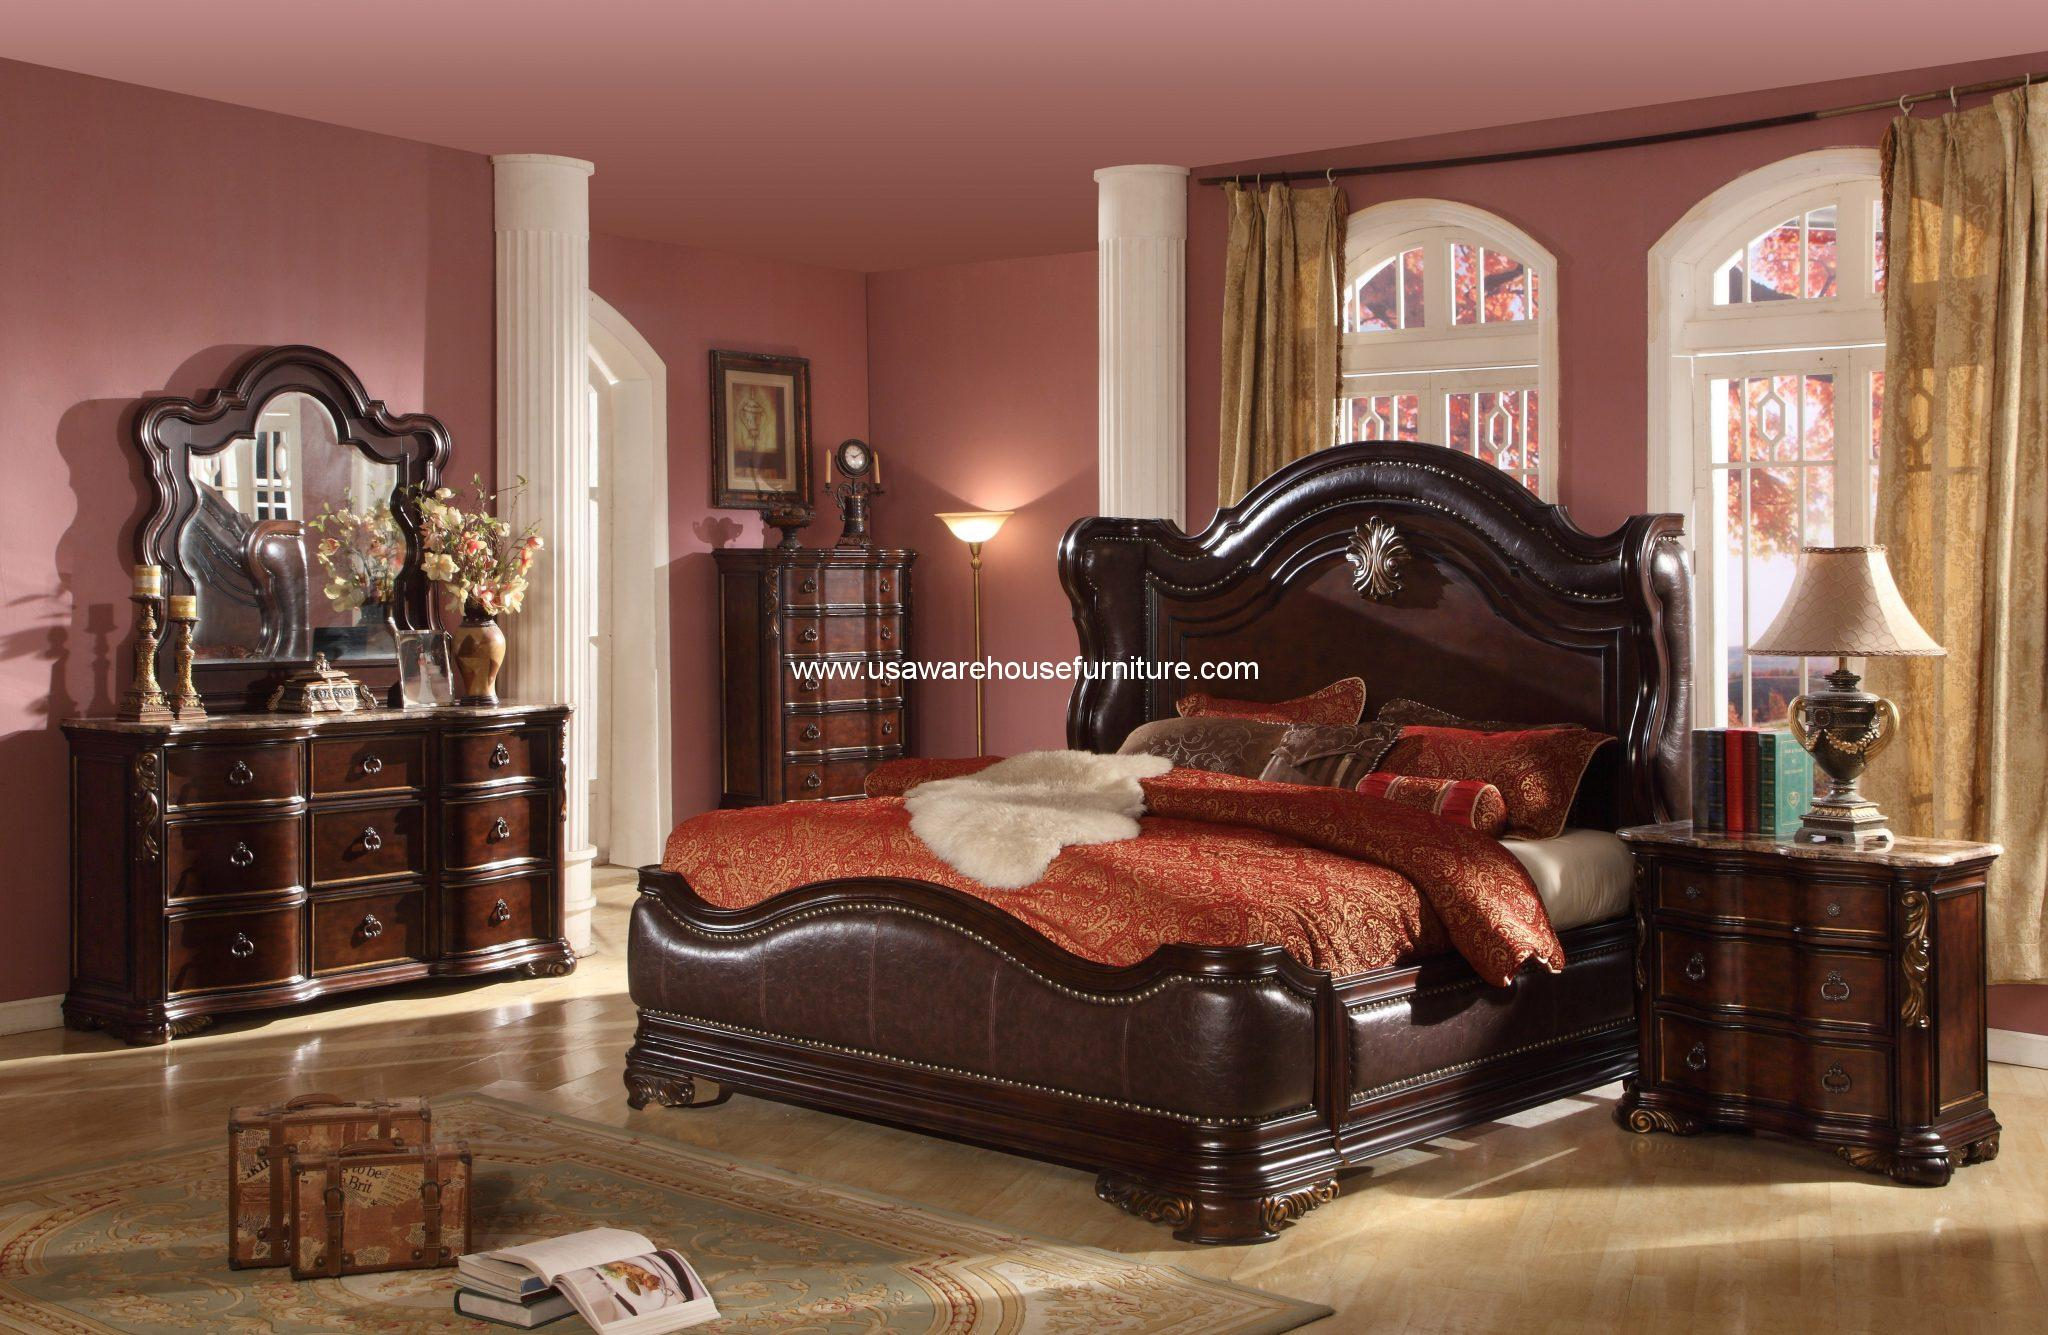 Mcferran Furnishing Imperial Bedroom Set USA Warehouse Furniture